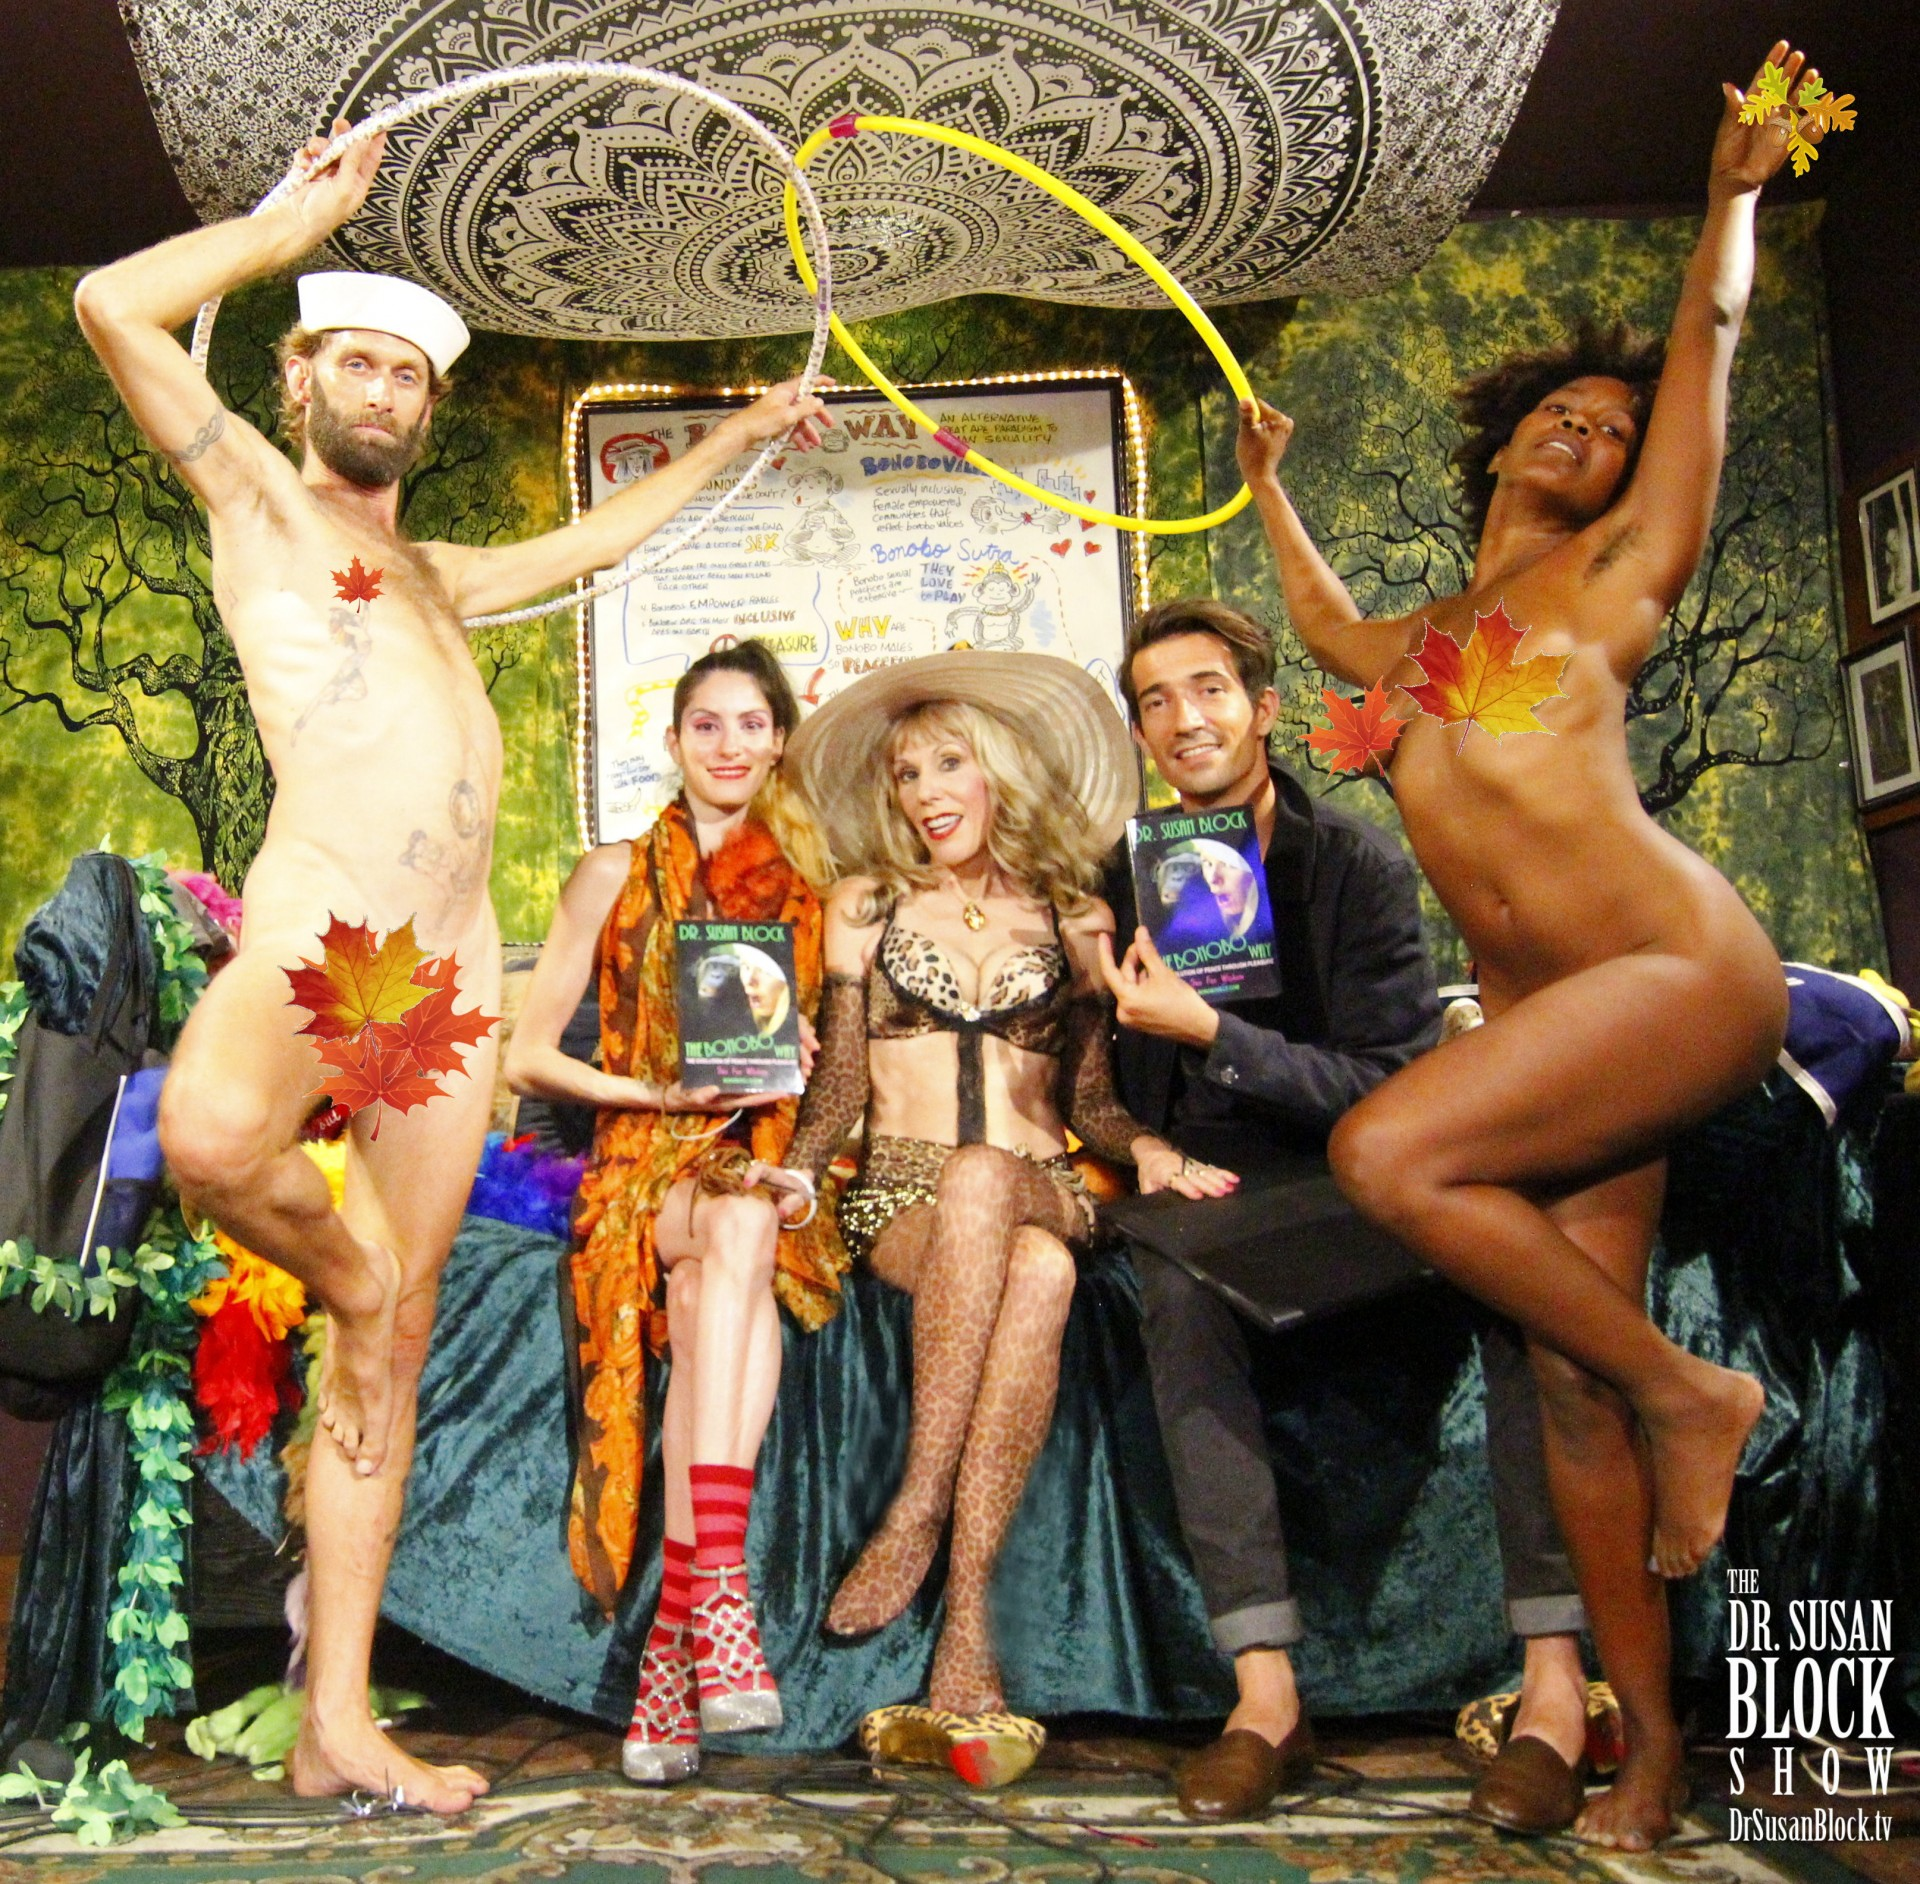 Happy Erotic Autumnal Equinox from The Dr. Susan Block Show: Chef Be*Live, Madame Margherite, Dr. Suzy, Sebastian Walker, Daniele Watts. Photo: Abe Bonobo